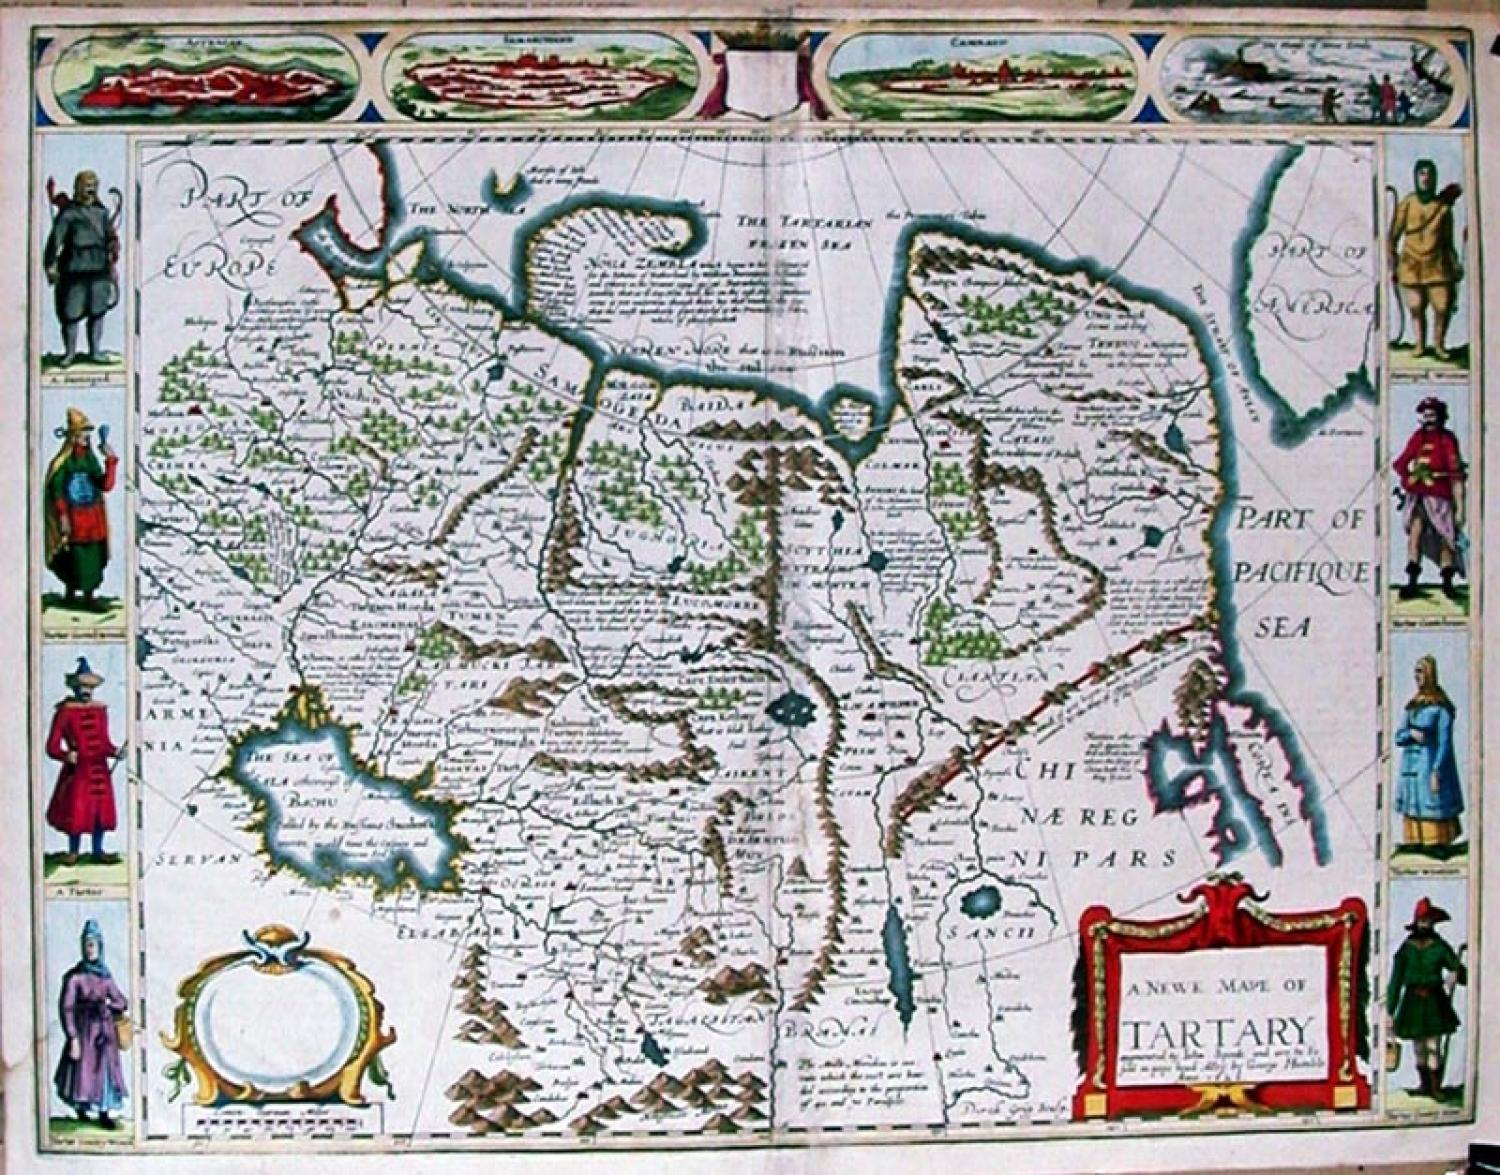 SOLD A newe map of Tartary